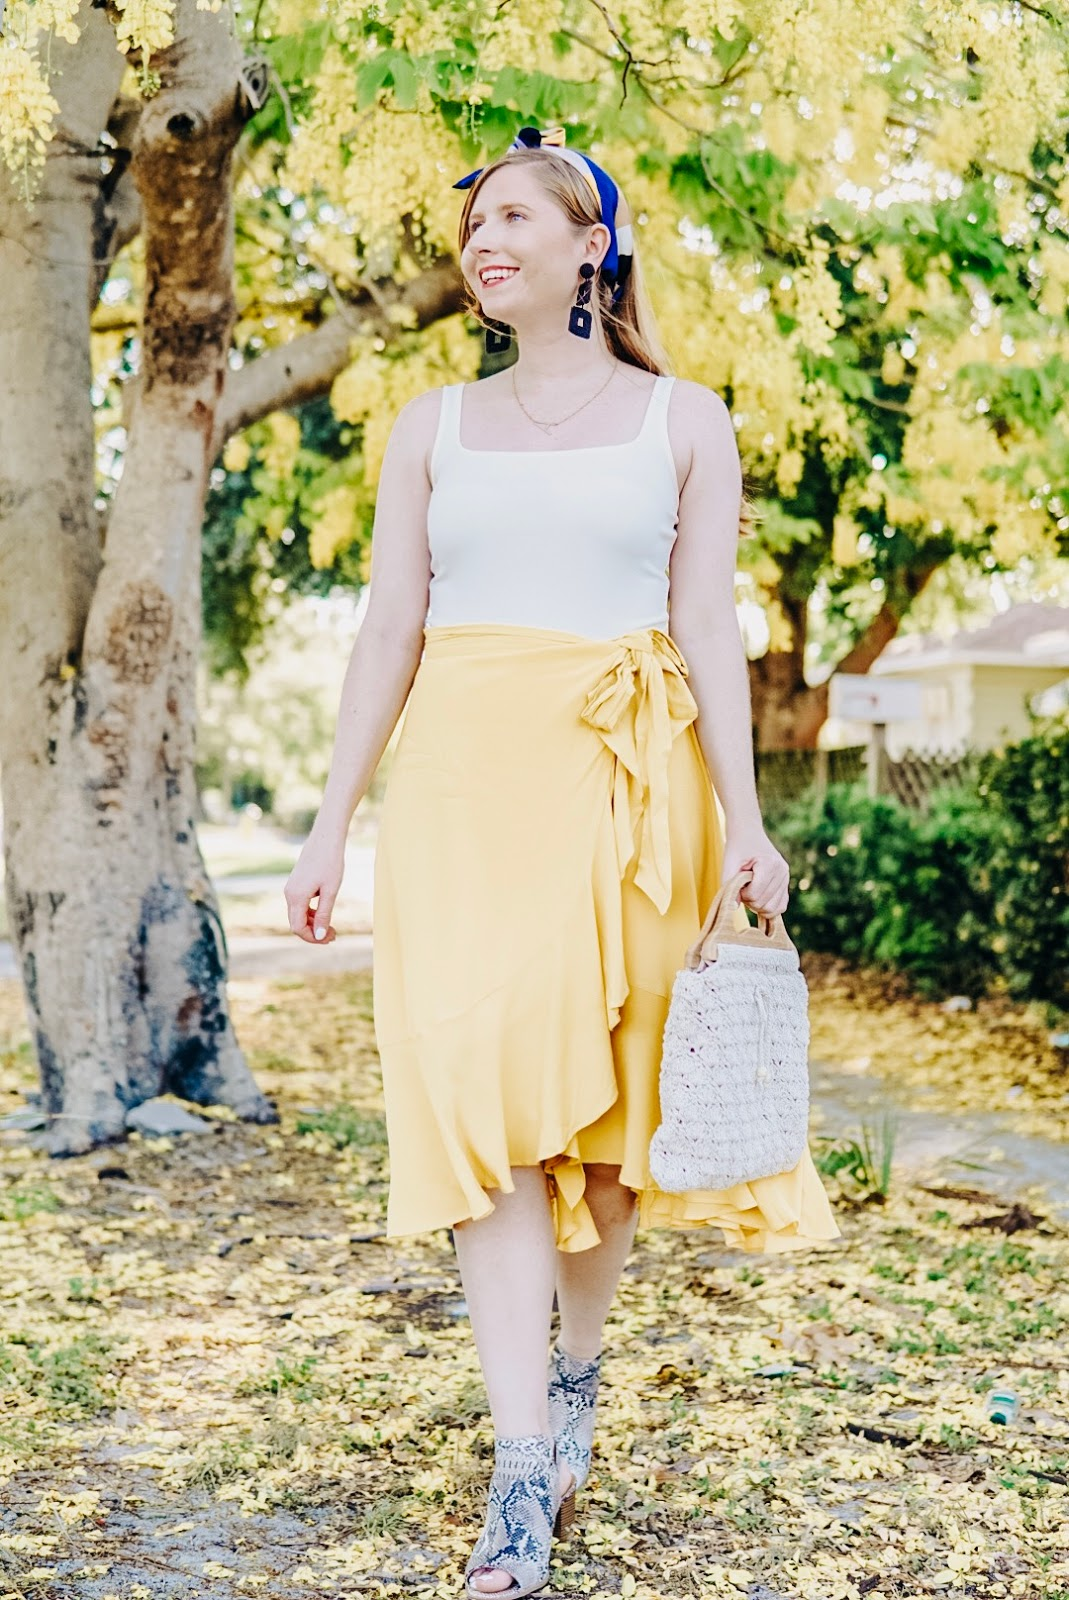 Styling a Casual Yellow Wrap Midi Skirt for Summer | Affordable by Amanda Tampa Blogger | Misred Outfitters Online Yellow Ruffle Wrap Skirt